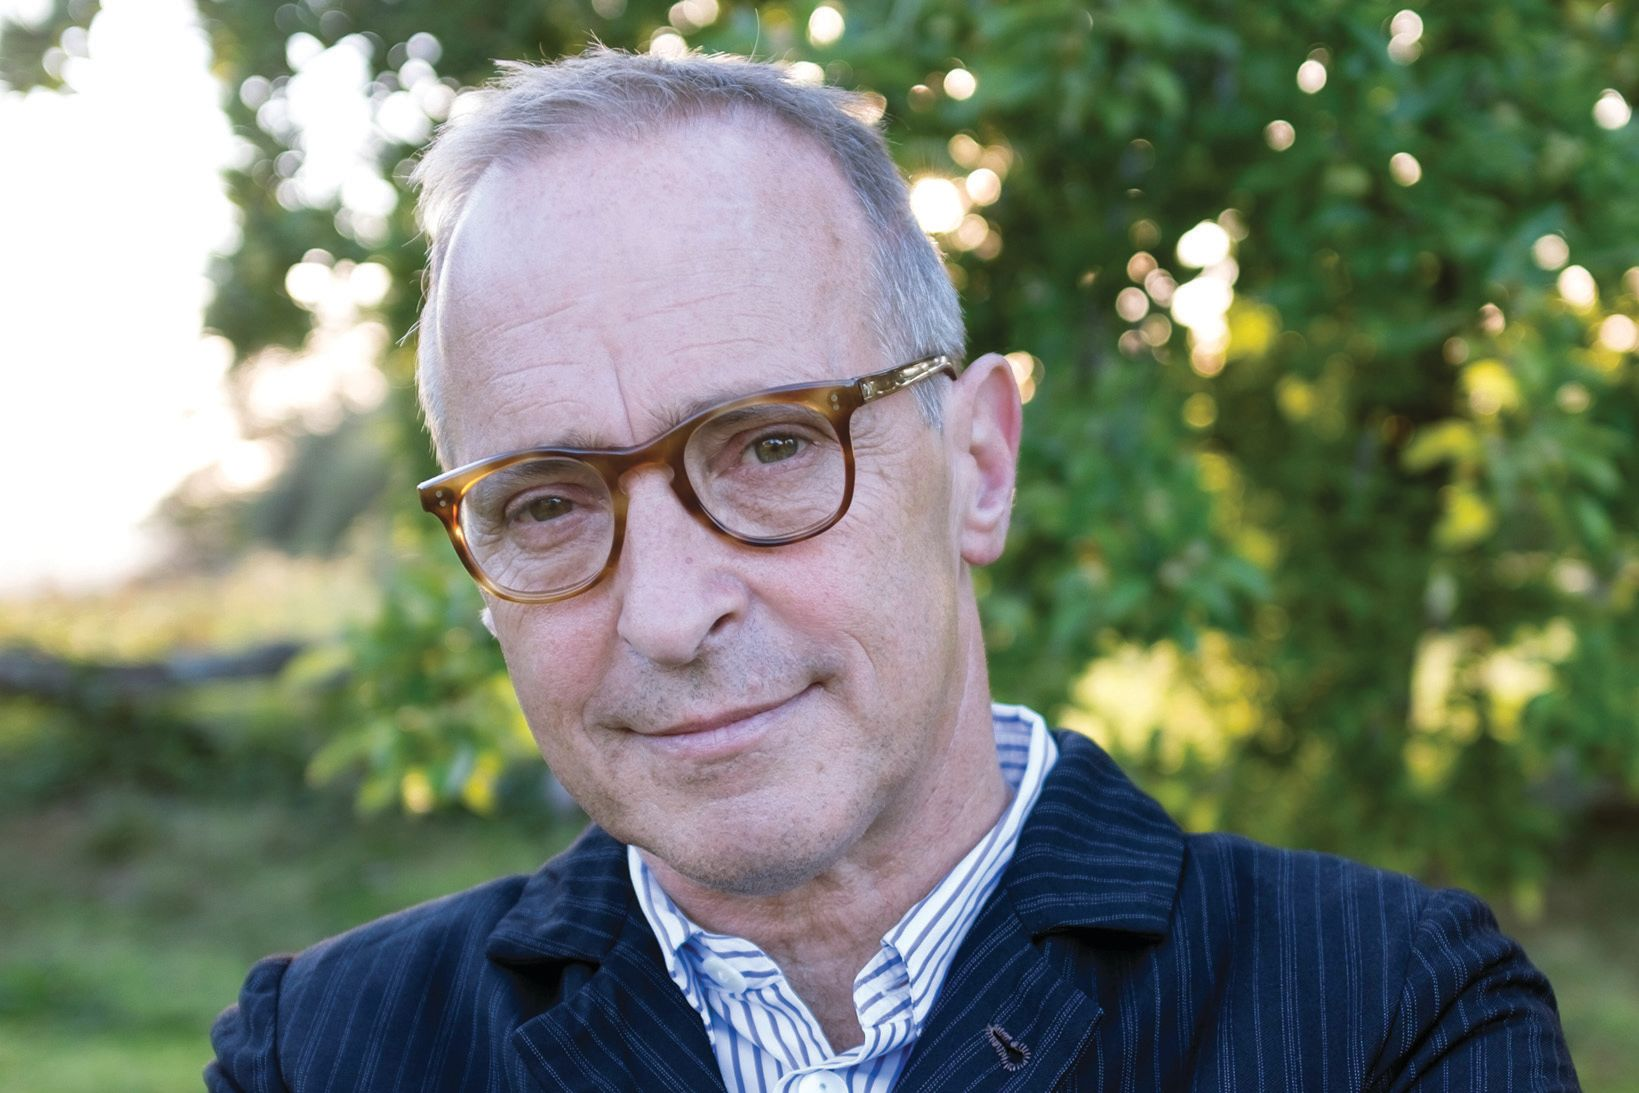 David sedaris  credit photograph by ingrid christie  ingridchristie dot com  three lqxekp